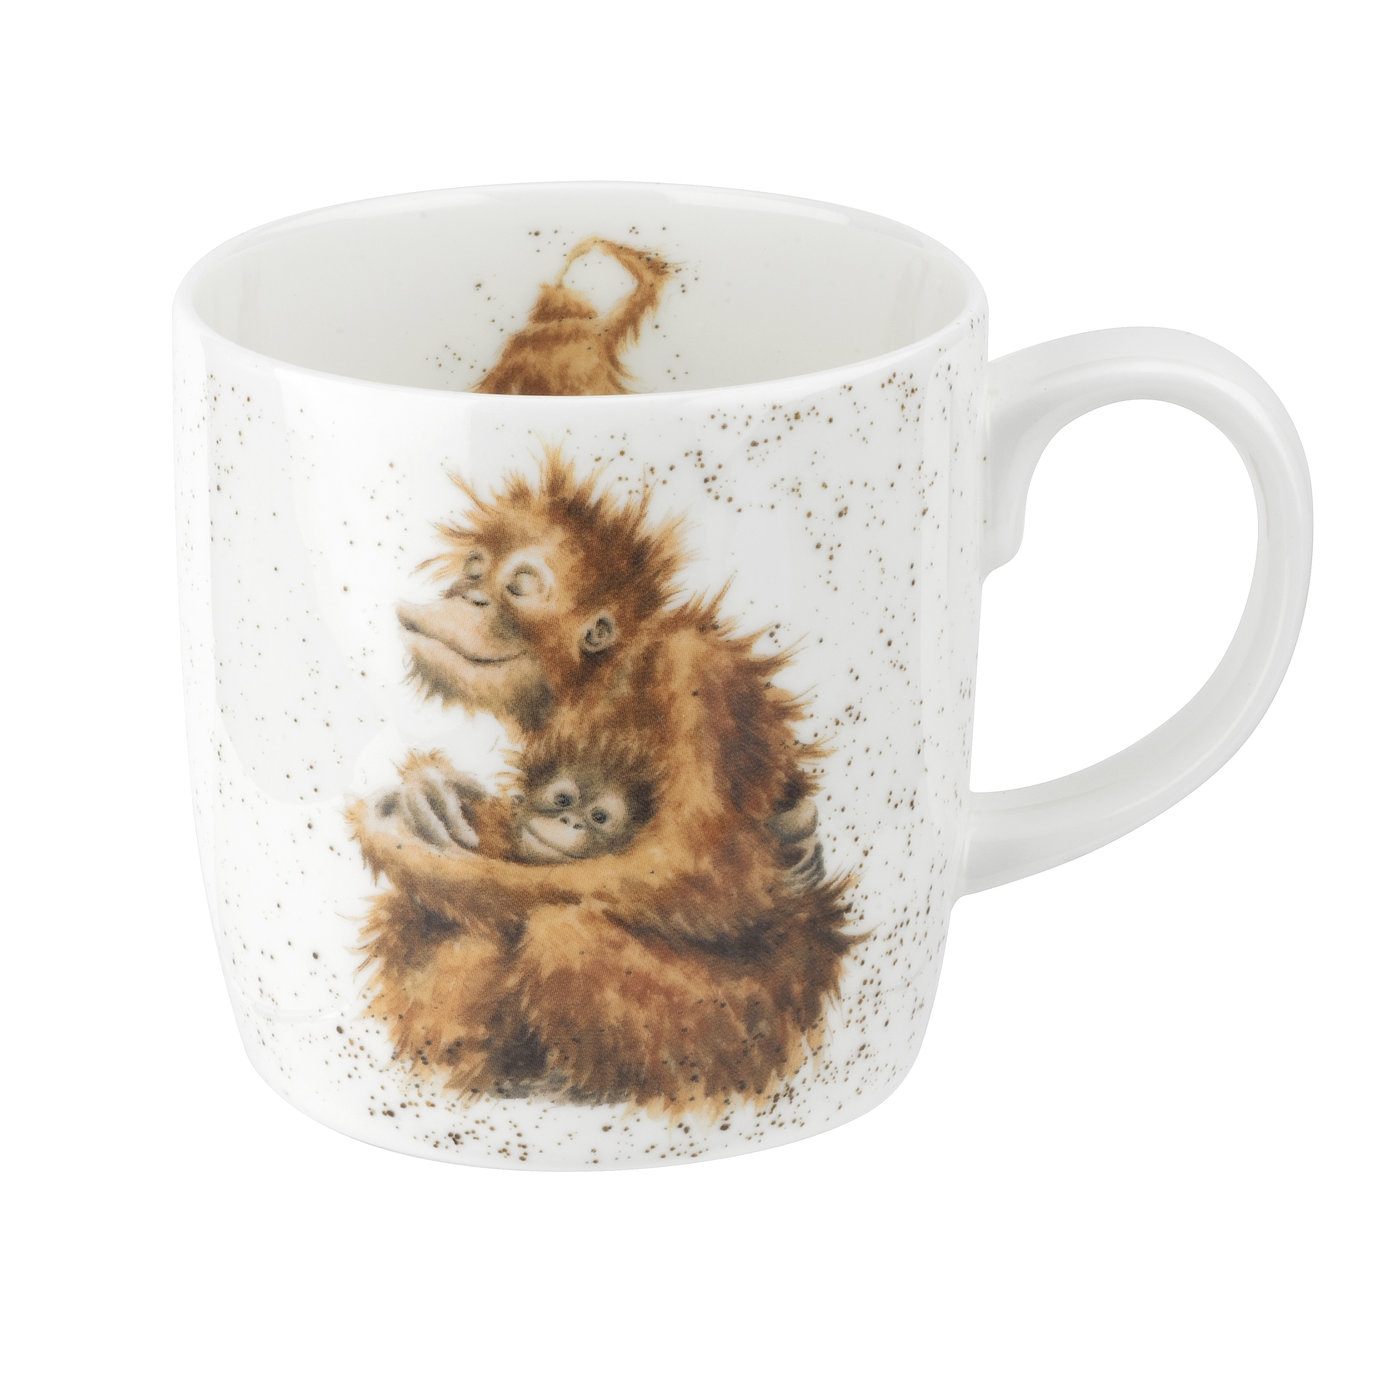 Royal Worcester Wrendale Designs Orangutangle 14oz Fine Bone China Mug image number 0